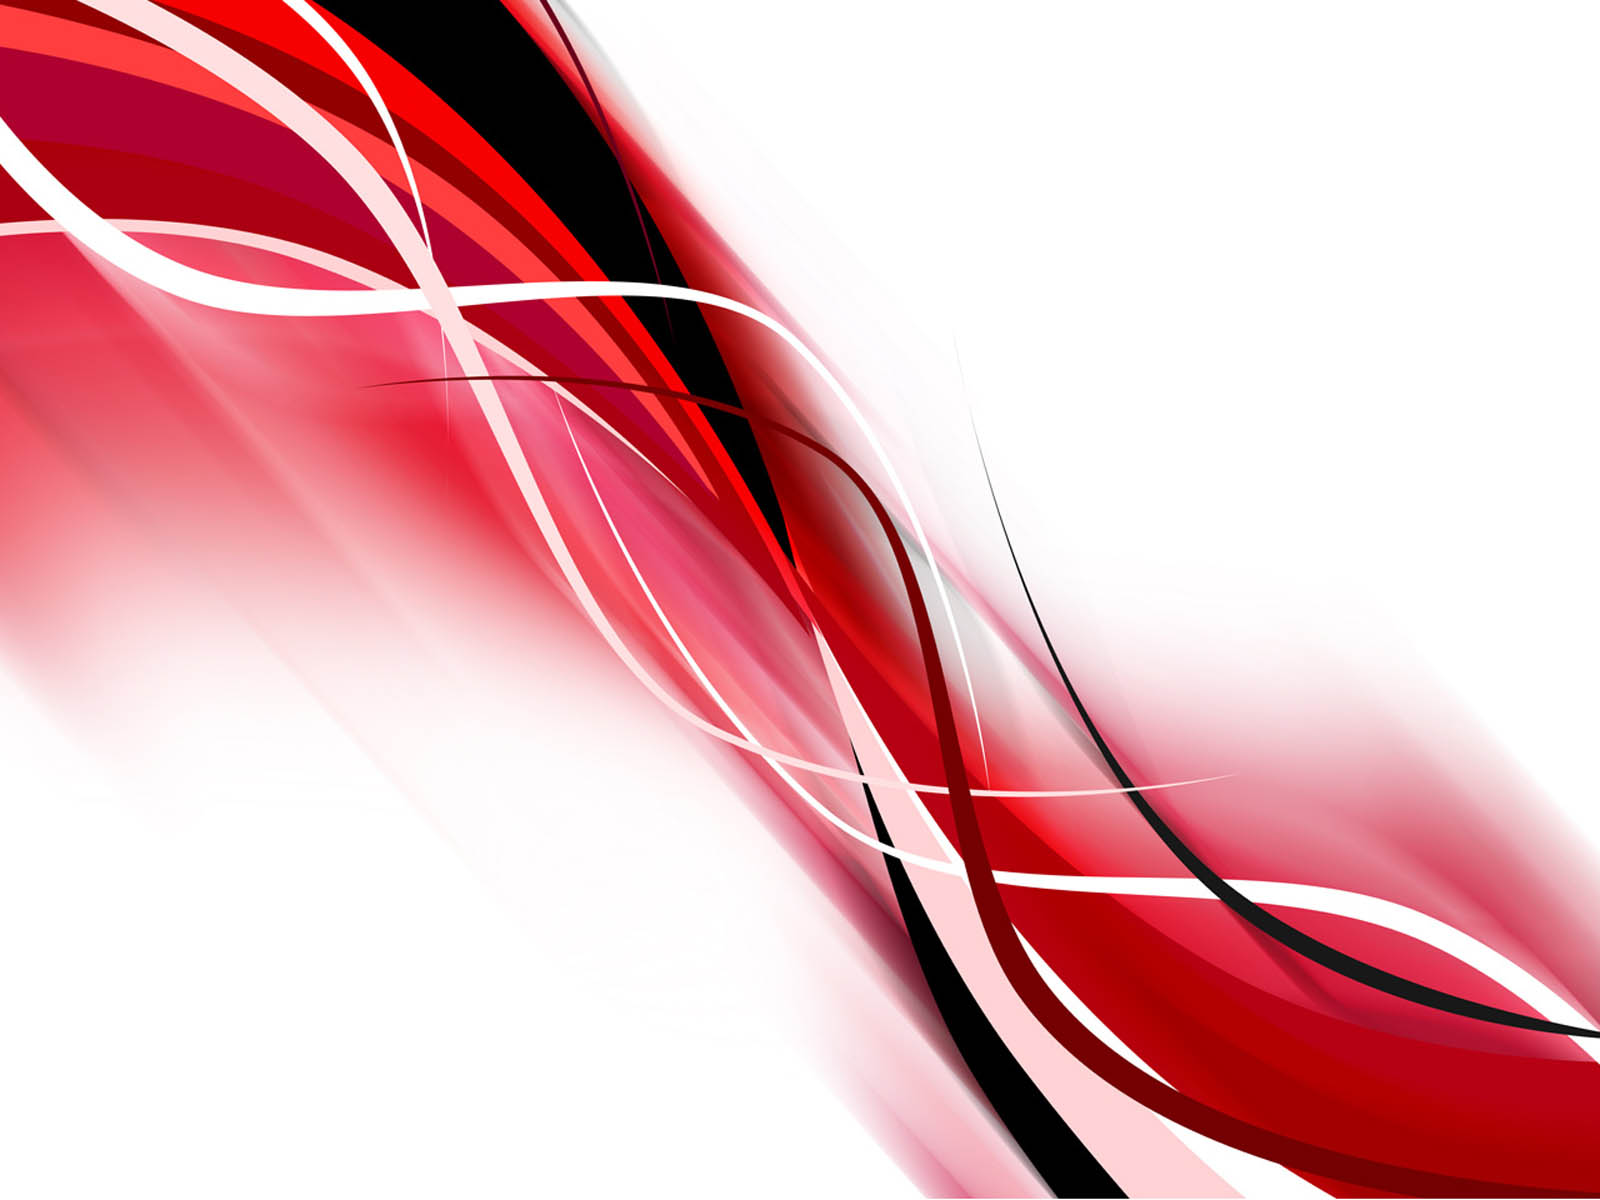 Tag Abstract Red Wallpapers Backgrounds Photos Pictures and 1600x1200